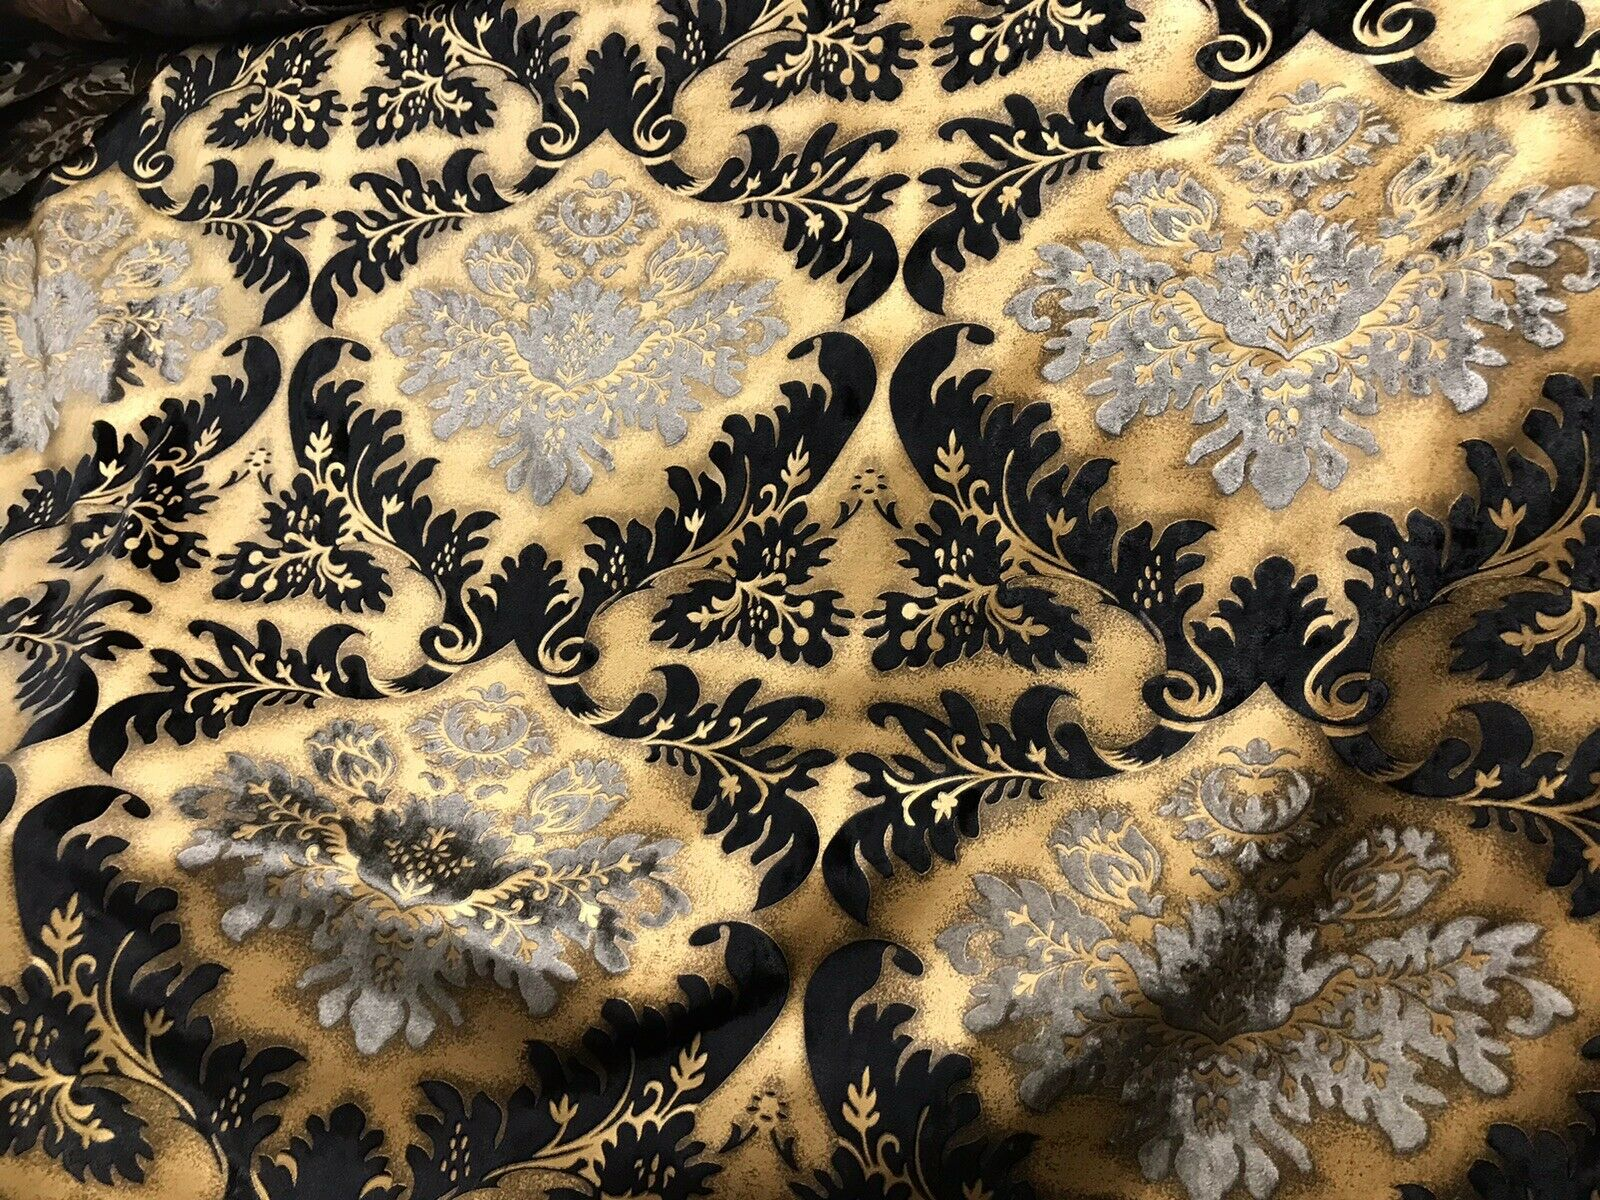 Queen Kathryn Designer Burnout Damask Cut Velvet Fabric Metallic Gold & Black Drapery